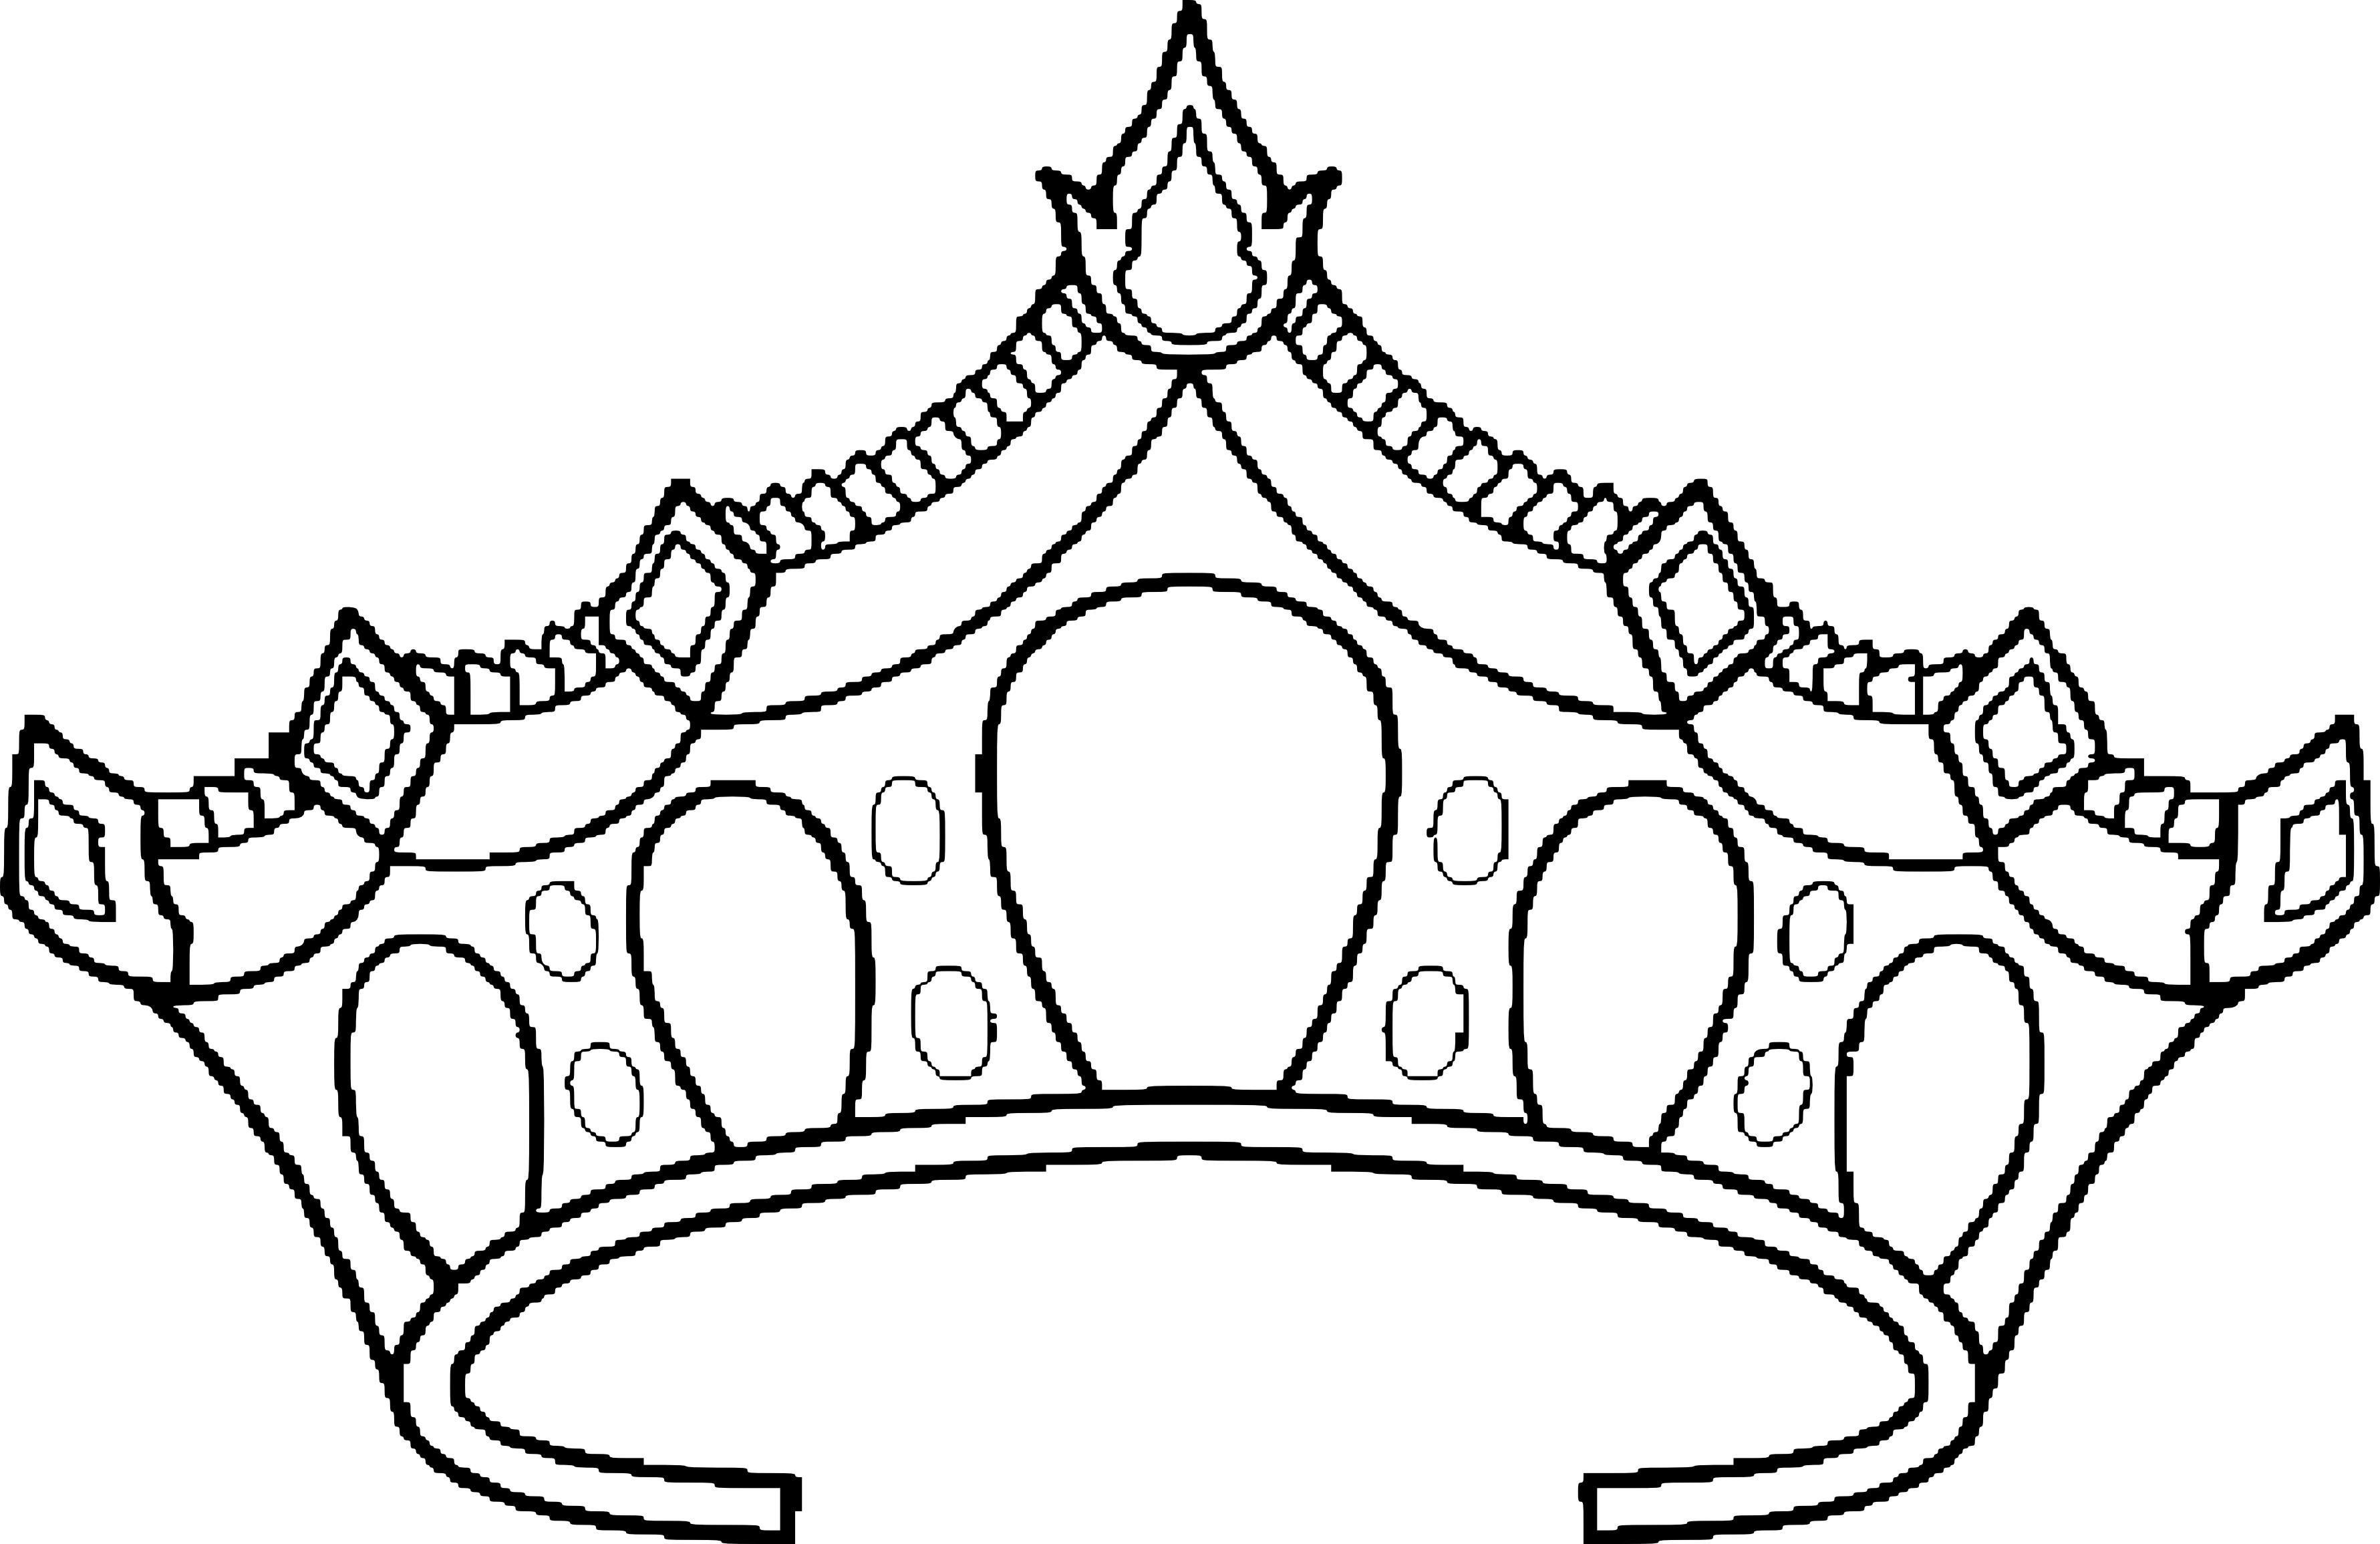 51 Coloriage Pour Fille A Imprimer Princesse In 2020 Coloring Pages Princess Crown Drawing Tiara Drawing